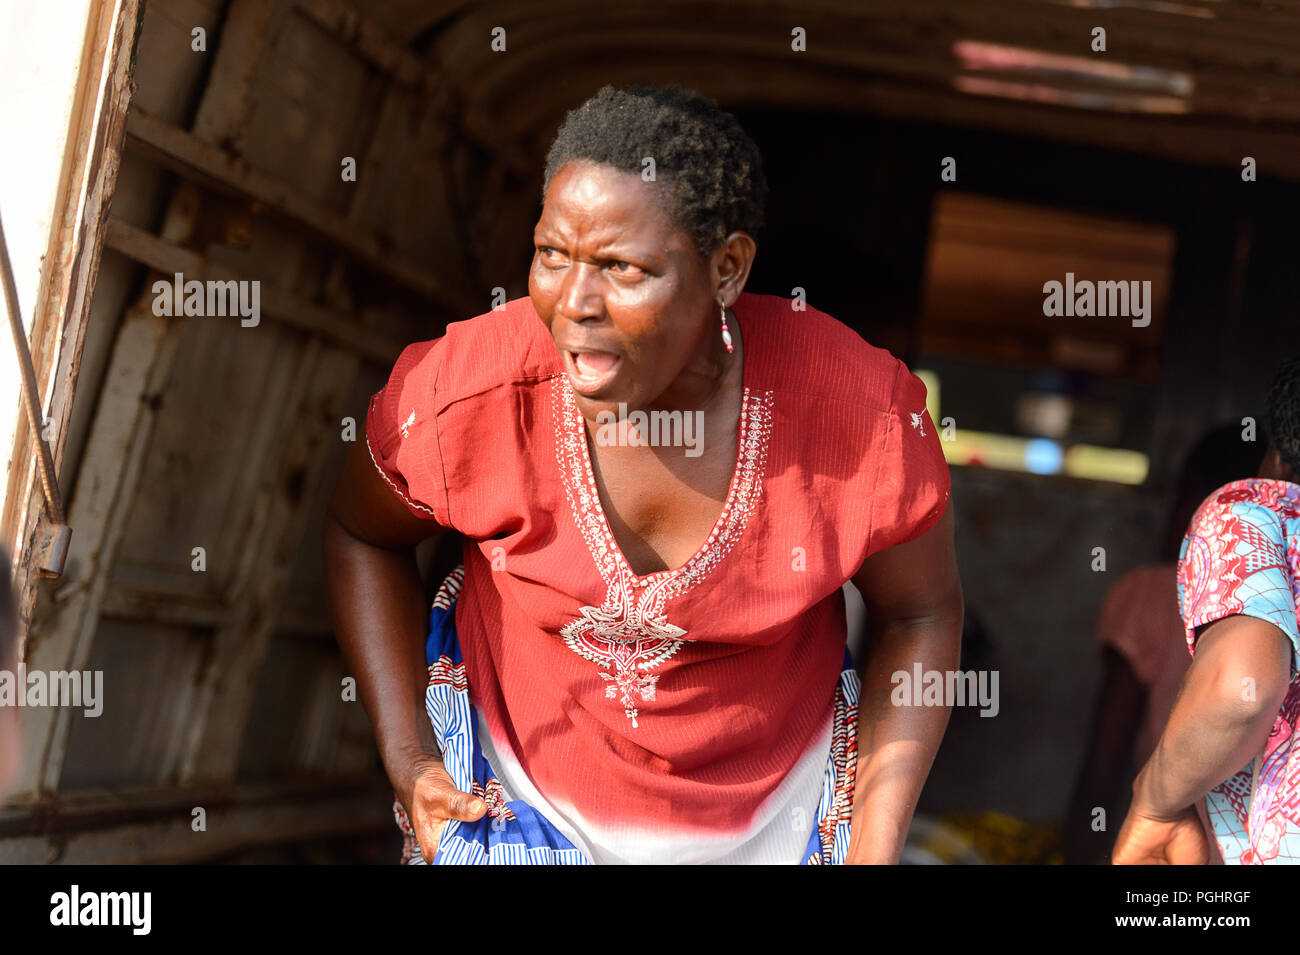 OUIDAH, BENIN - Jan 10, 2017: Unidentified Beninese woman tries to say something at the local market. Benin people suffer of poverty due to the bad ec - Stock Image